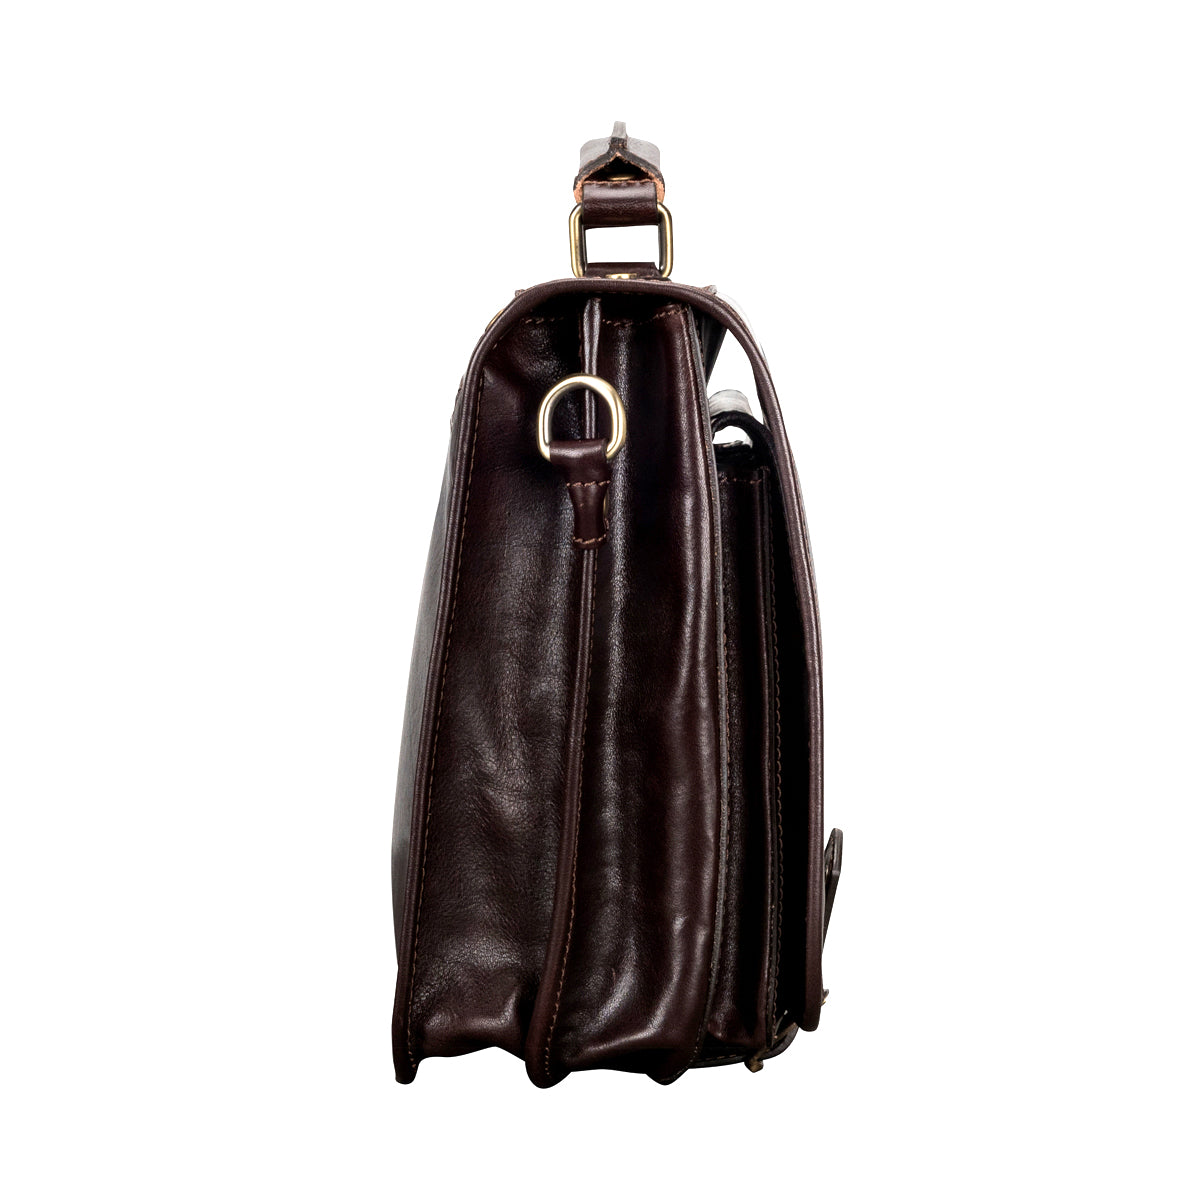 Image 3 of the 'Jesolo Due' Dark Chocolate Veg-Tanned Leather Satchel